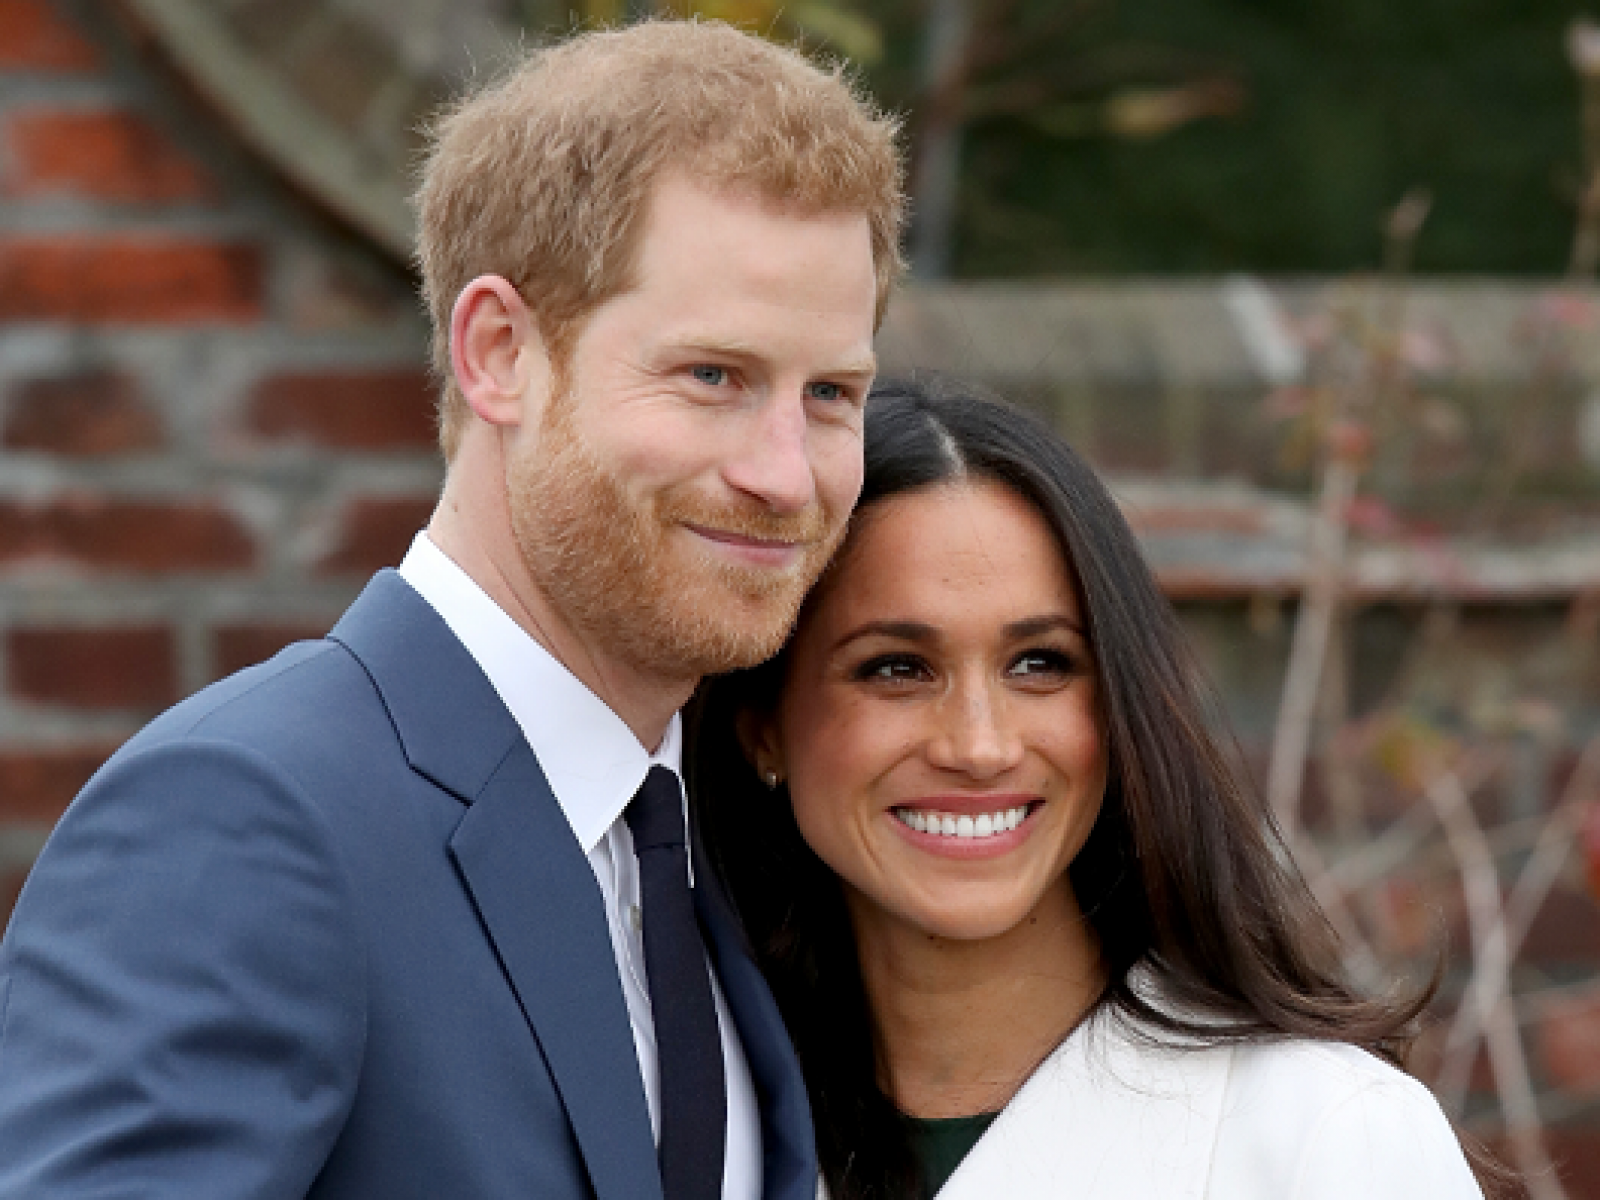 meghan markle s engagement ring was made with diamonds from princess diana s collection engagement ring was made with diamonds